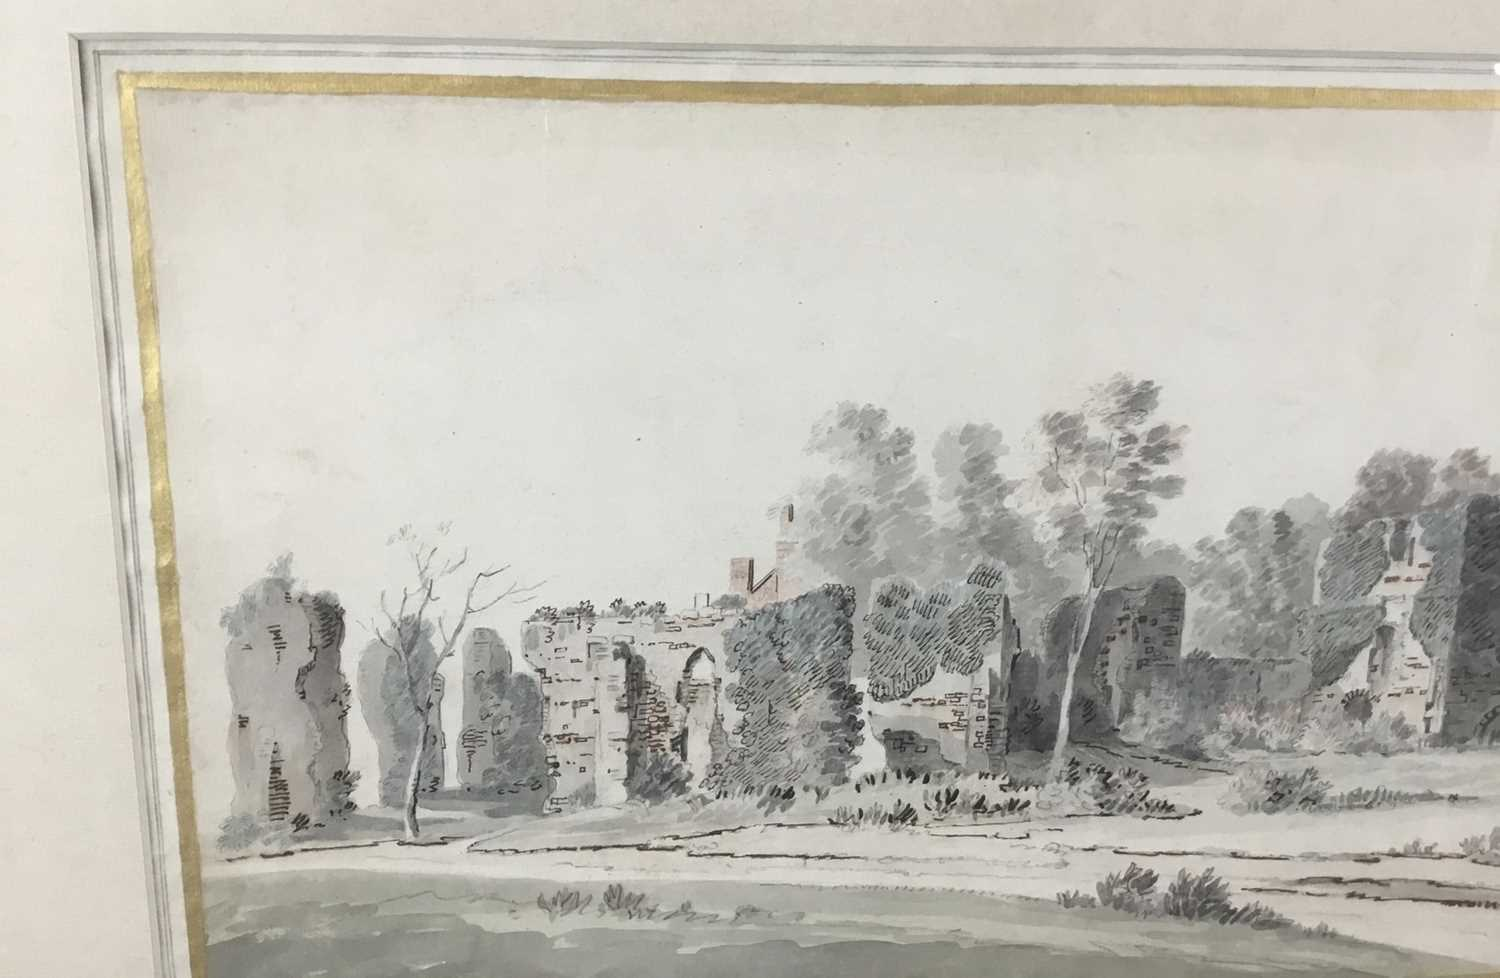 English School, early 18th century, monochrome pen, ink and watercolour - Castle Ruins, with mark fo - Image 2 of 8